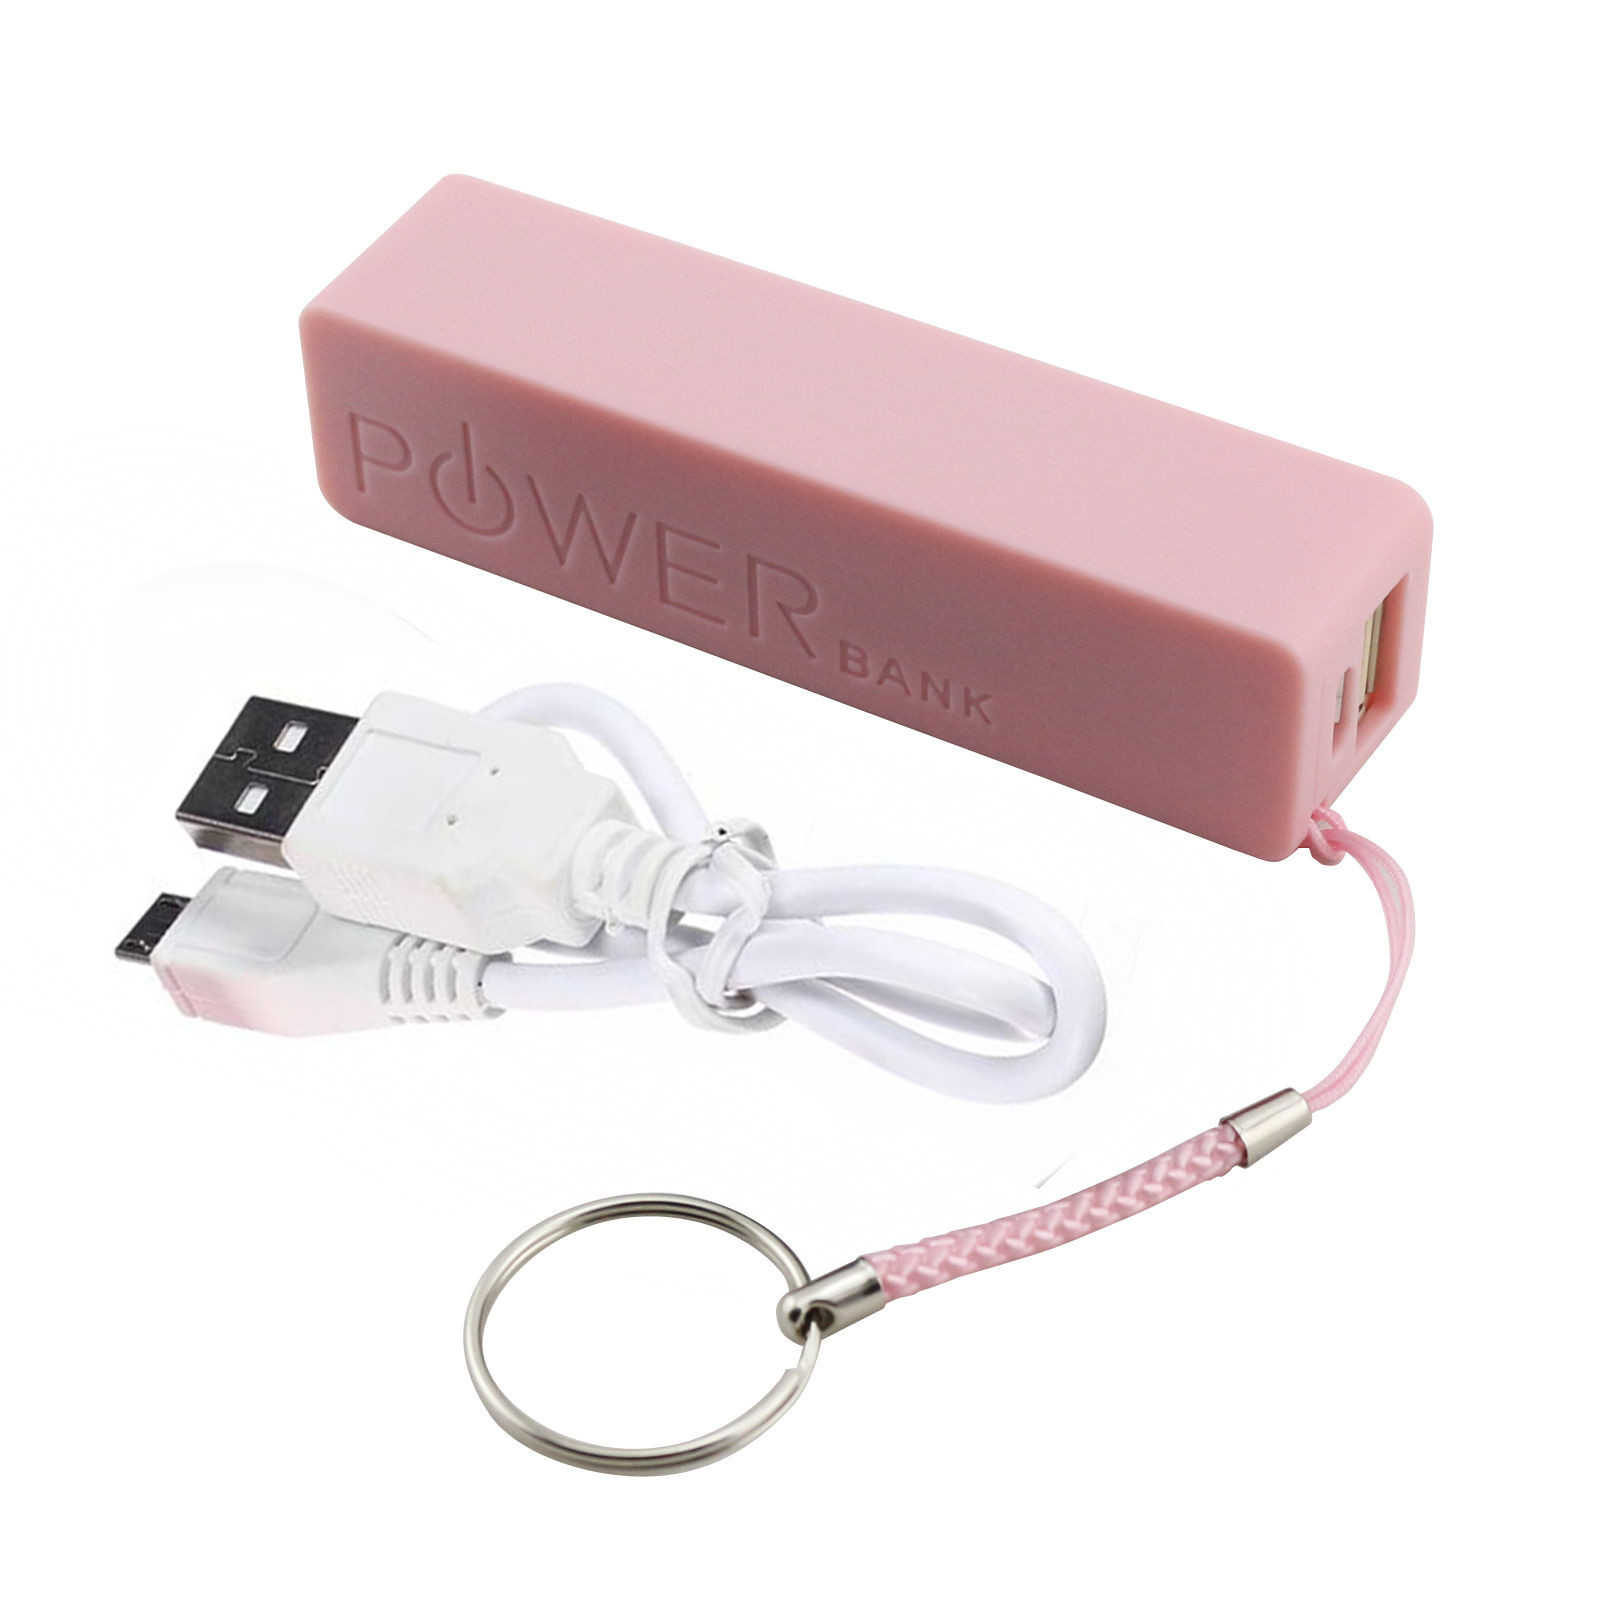 Single Section Charging Treasure Shell Cylinder DIY Free Welding Power Box Battery Shell Portable Power Bank Charger USB